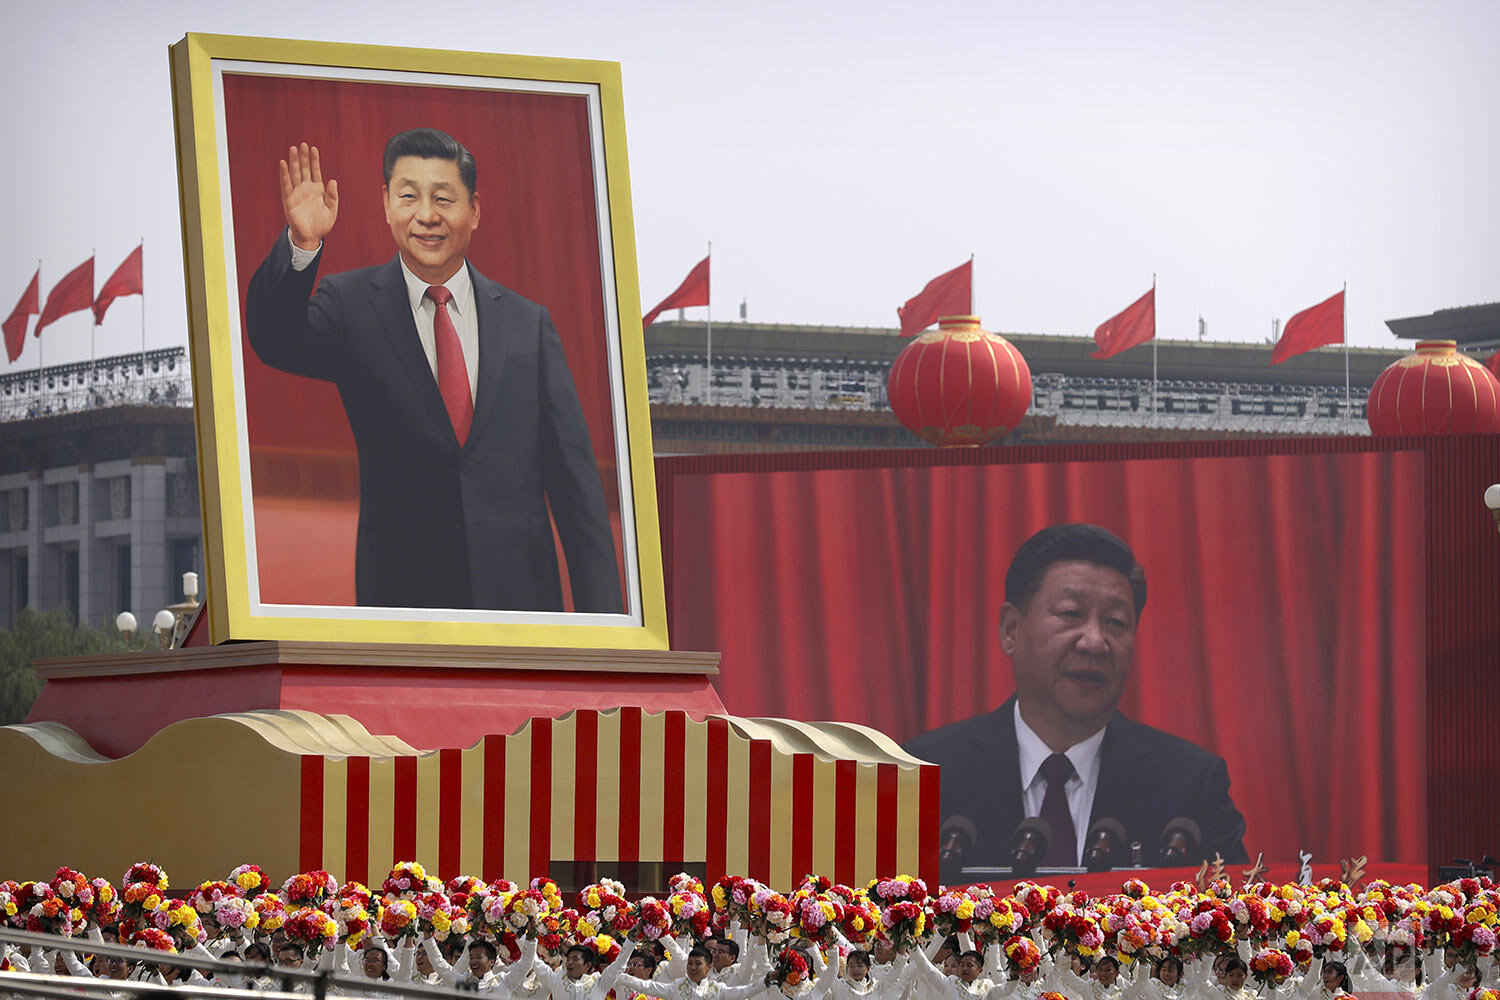 Participants cheer beneath a large portrait of Chinese President Xi Jinping during a parade to commemorate the 70th anniversary of the founding of Communist China in Beijing, Tuesday, Oct. 1, 2019. (AP Photo/Mark Schiefelbein)